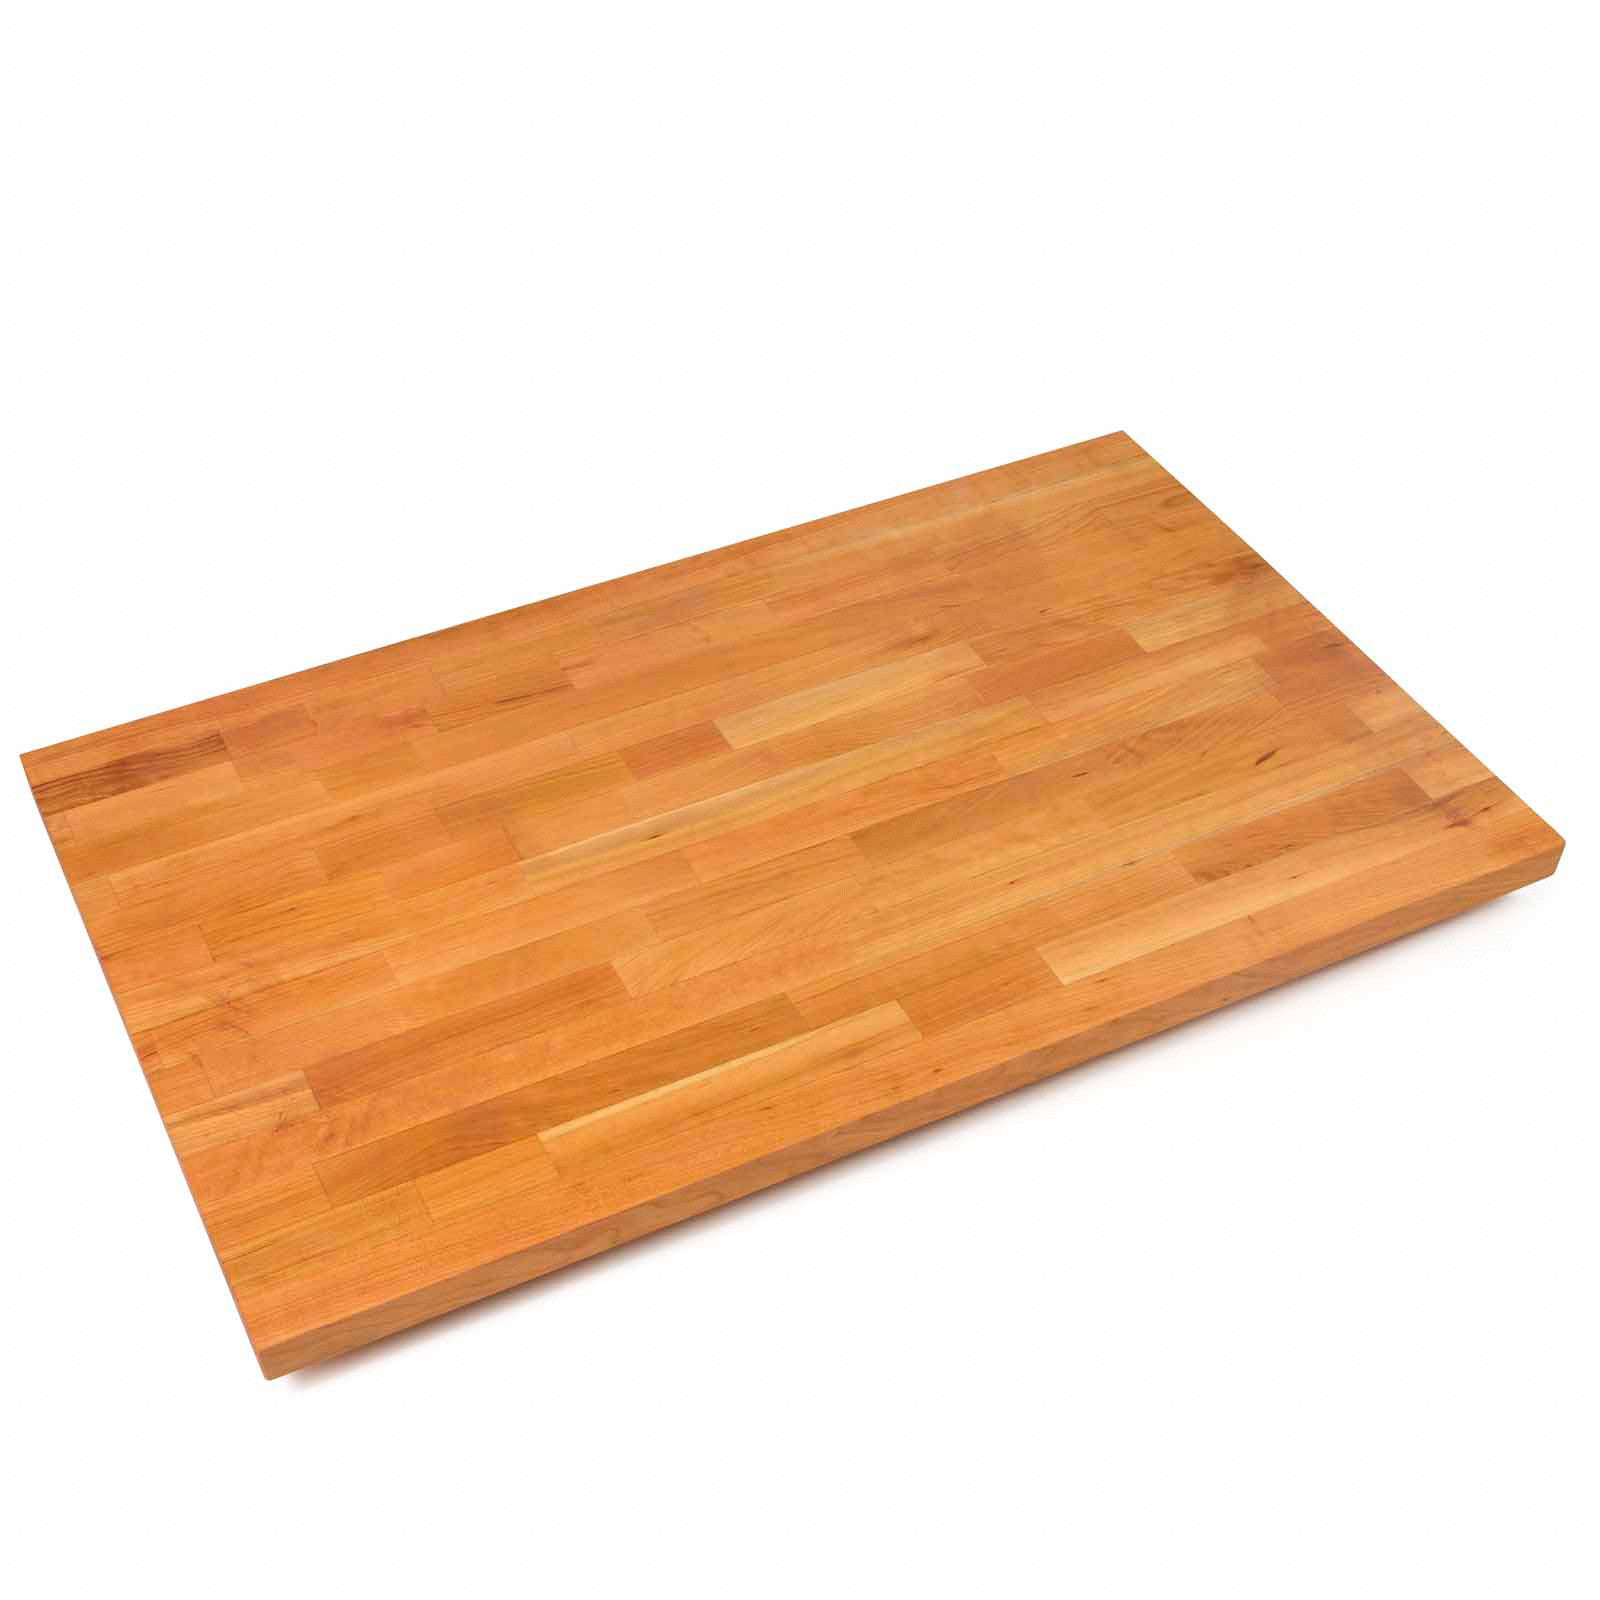 "John Boos 1 1/2"" Thick Blended Cherry Butcher Block Countertop - 27"" Wide"